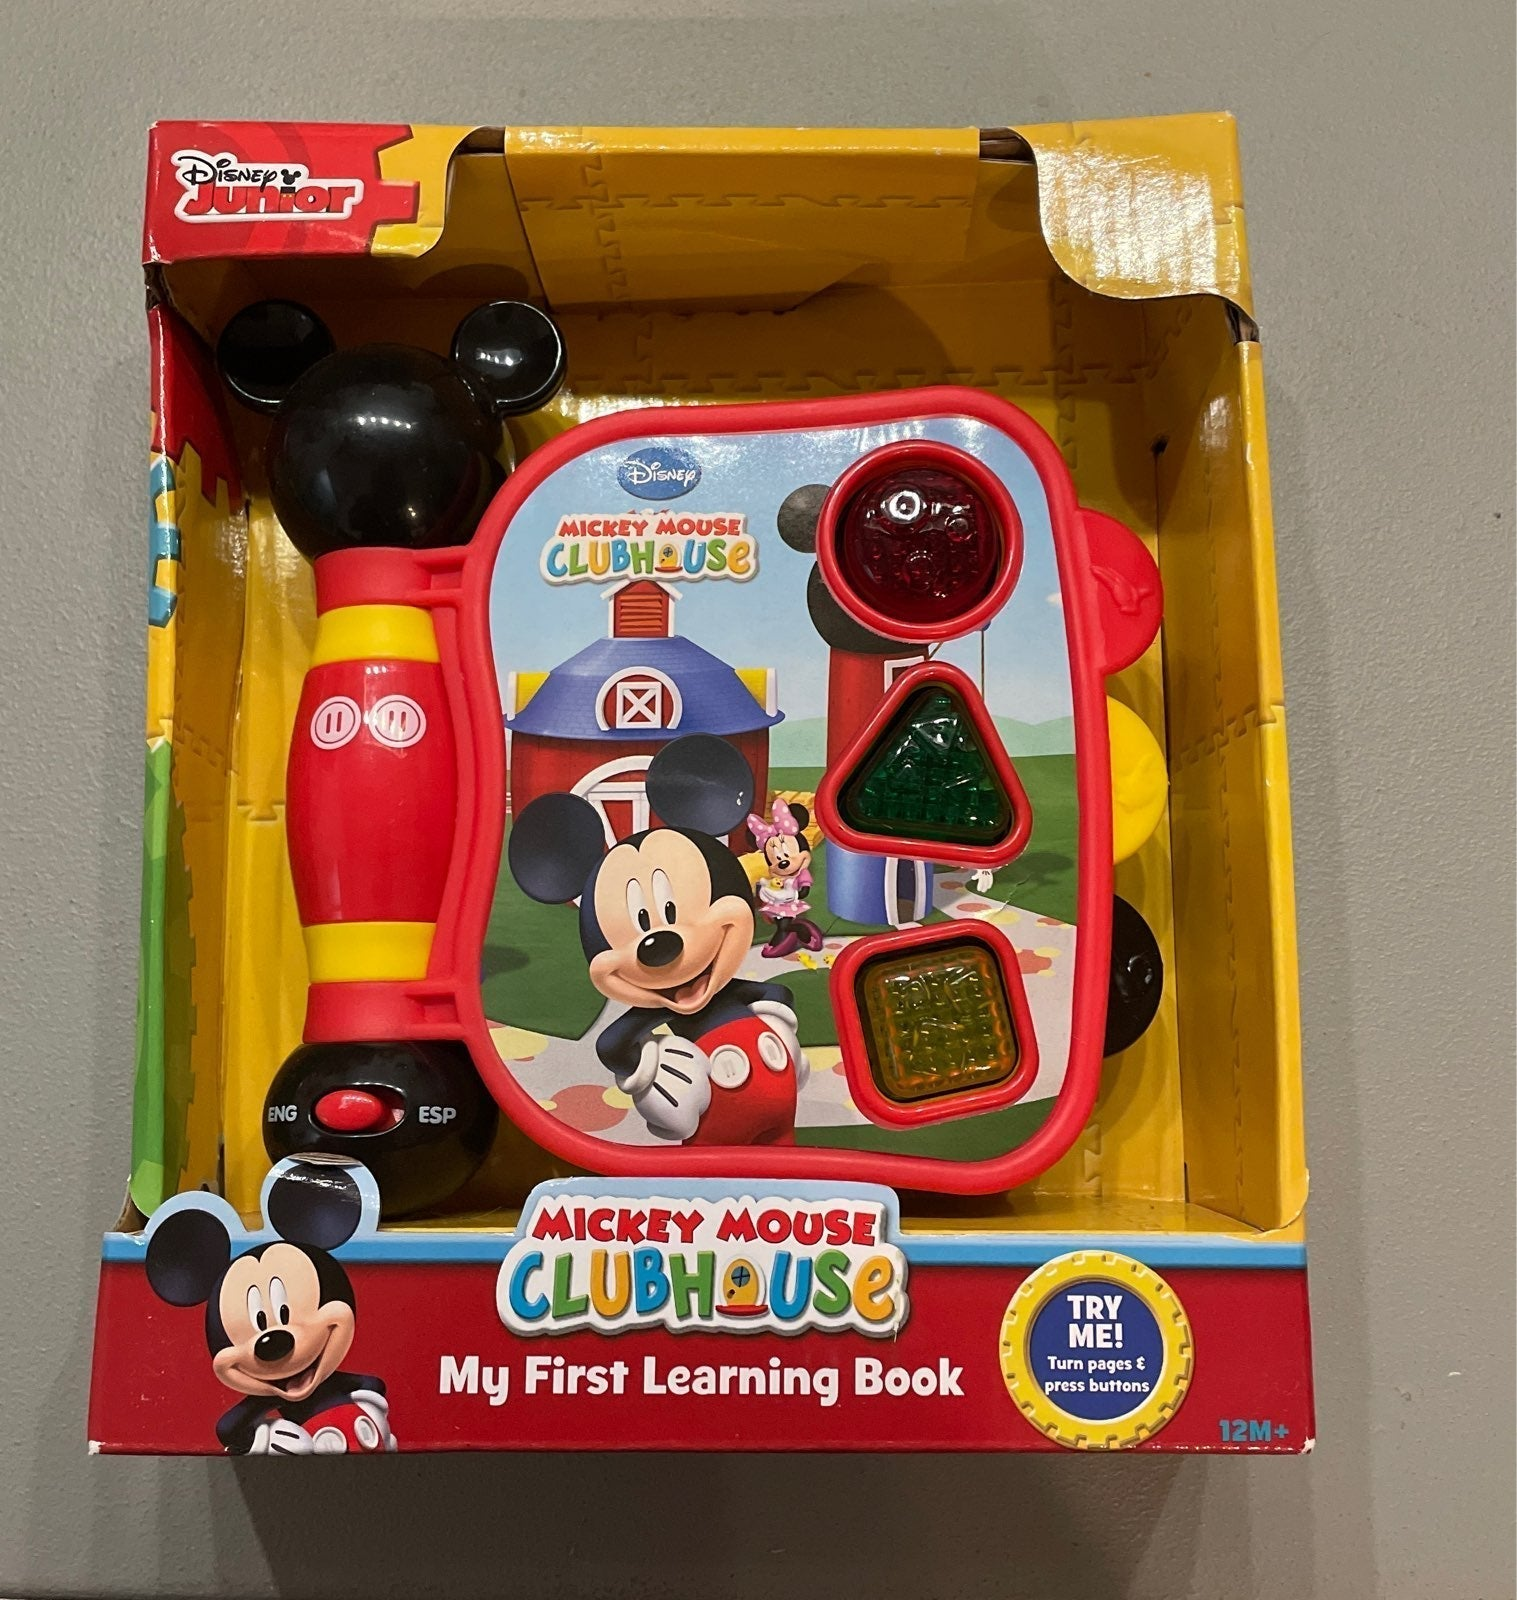 Disney junior- my first learning book